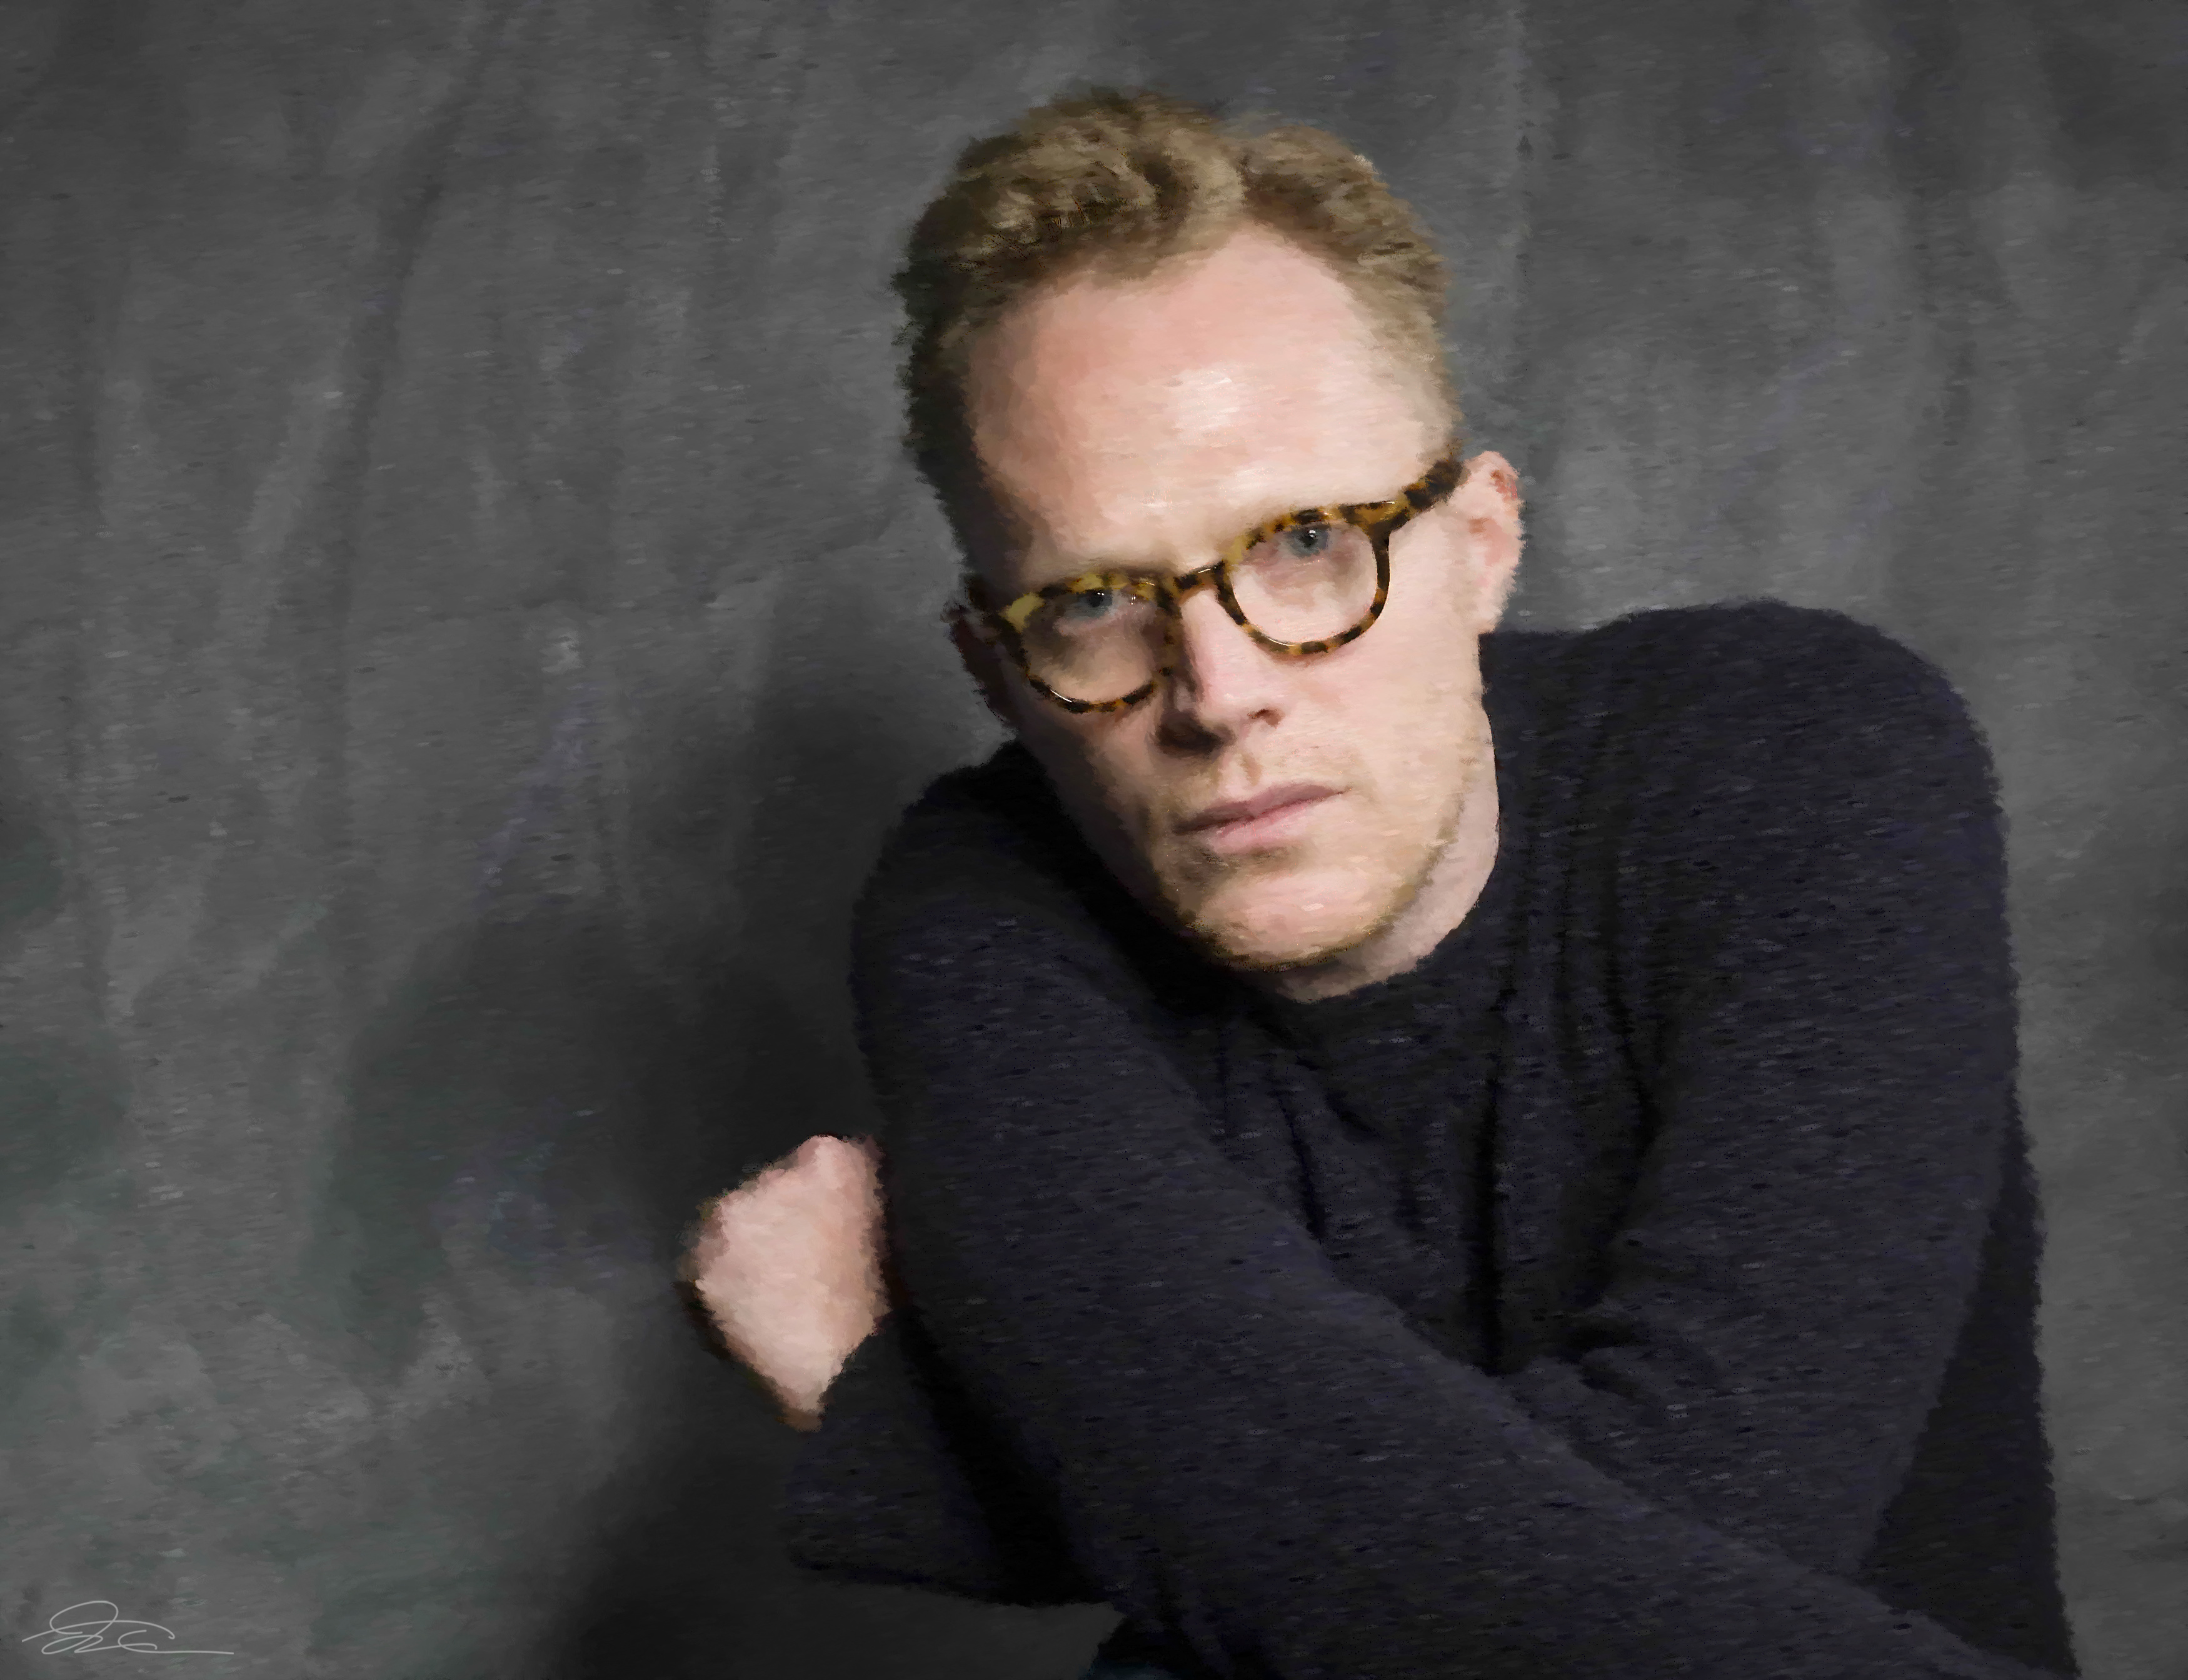 paul bettany inkheartpaul bettany gif, paul bettany vision, paul bettany height, paul bettany photoshoot, paul bettany tumblr, paul bettany jennifer connelly, paul bettany family, paul bettany avengers, paul bettany daughter, paul bettany legion, paul bettany and elizabeth olsen, paul bettany priest, paul bettany gallery, paul bettany films, paul bettany inkheart, paul bettany movie list, paul bettany long hair, paul bettany kirsten dunst, paul bettany knight's tale, paul bettany net worth